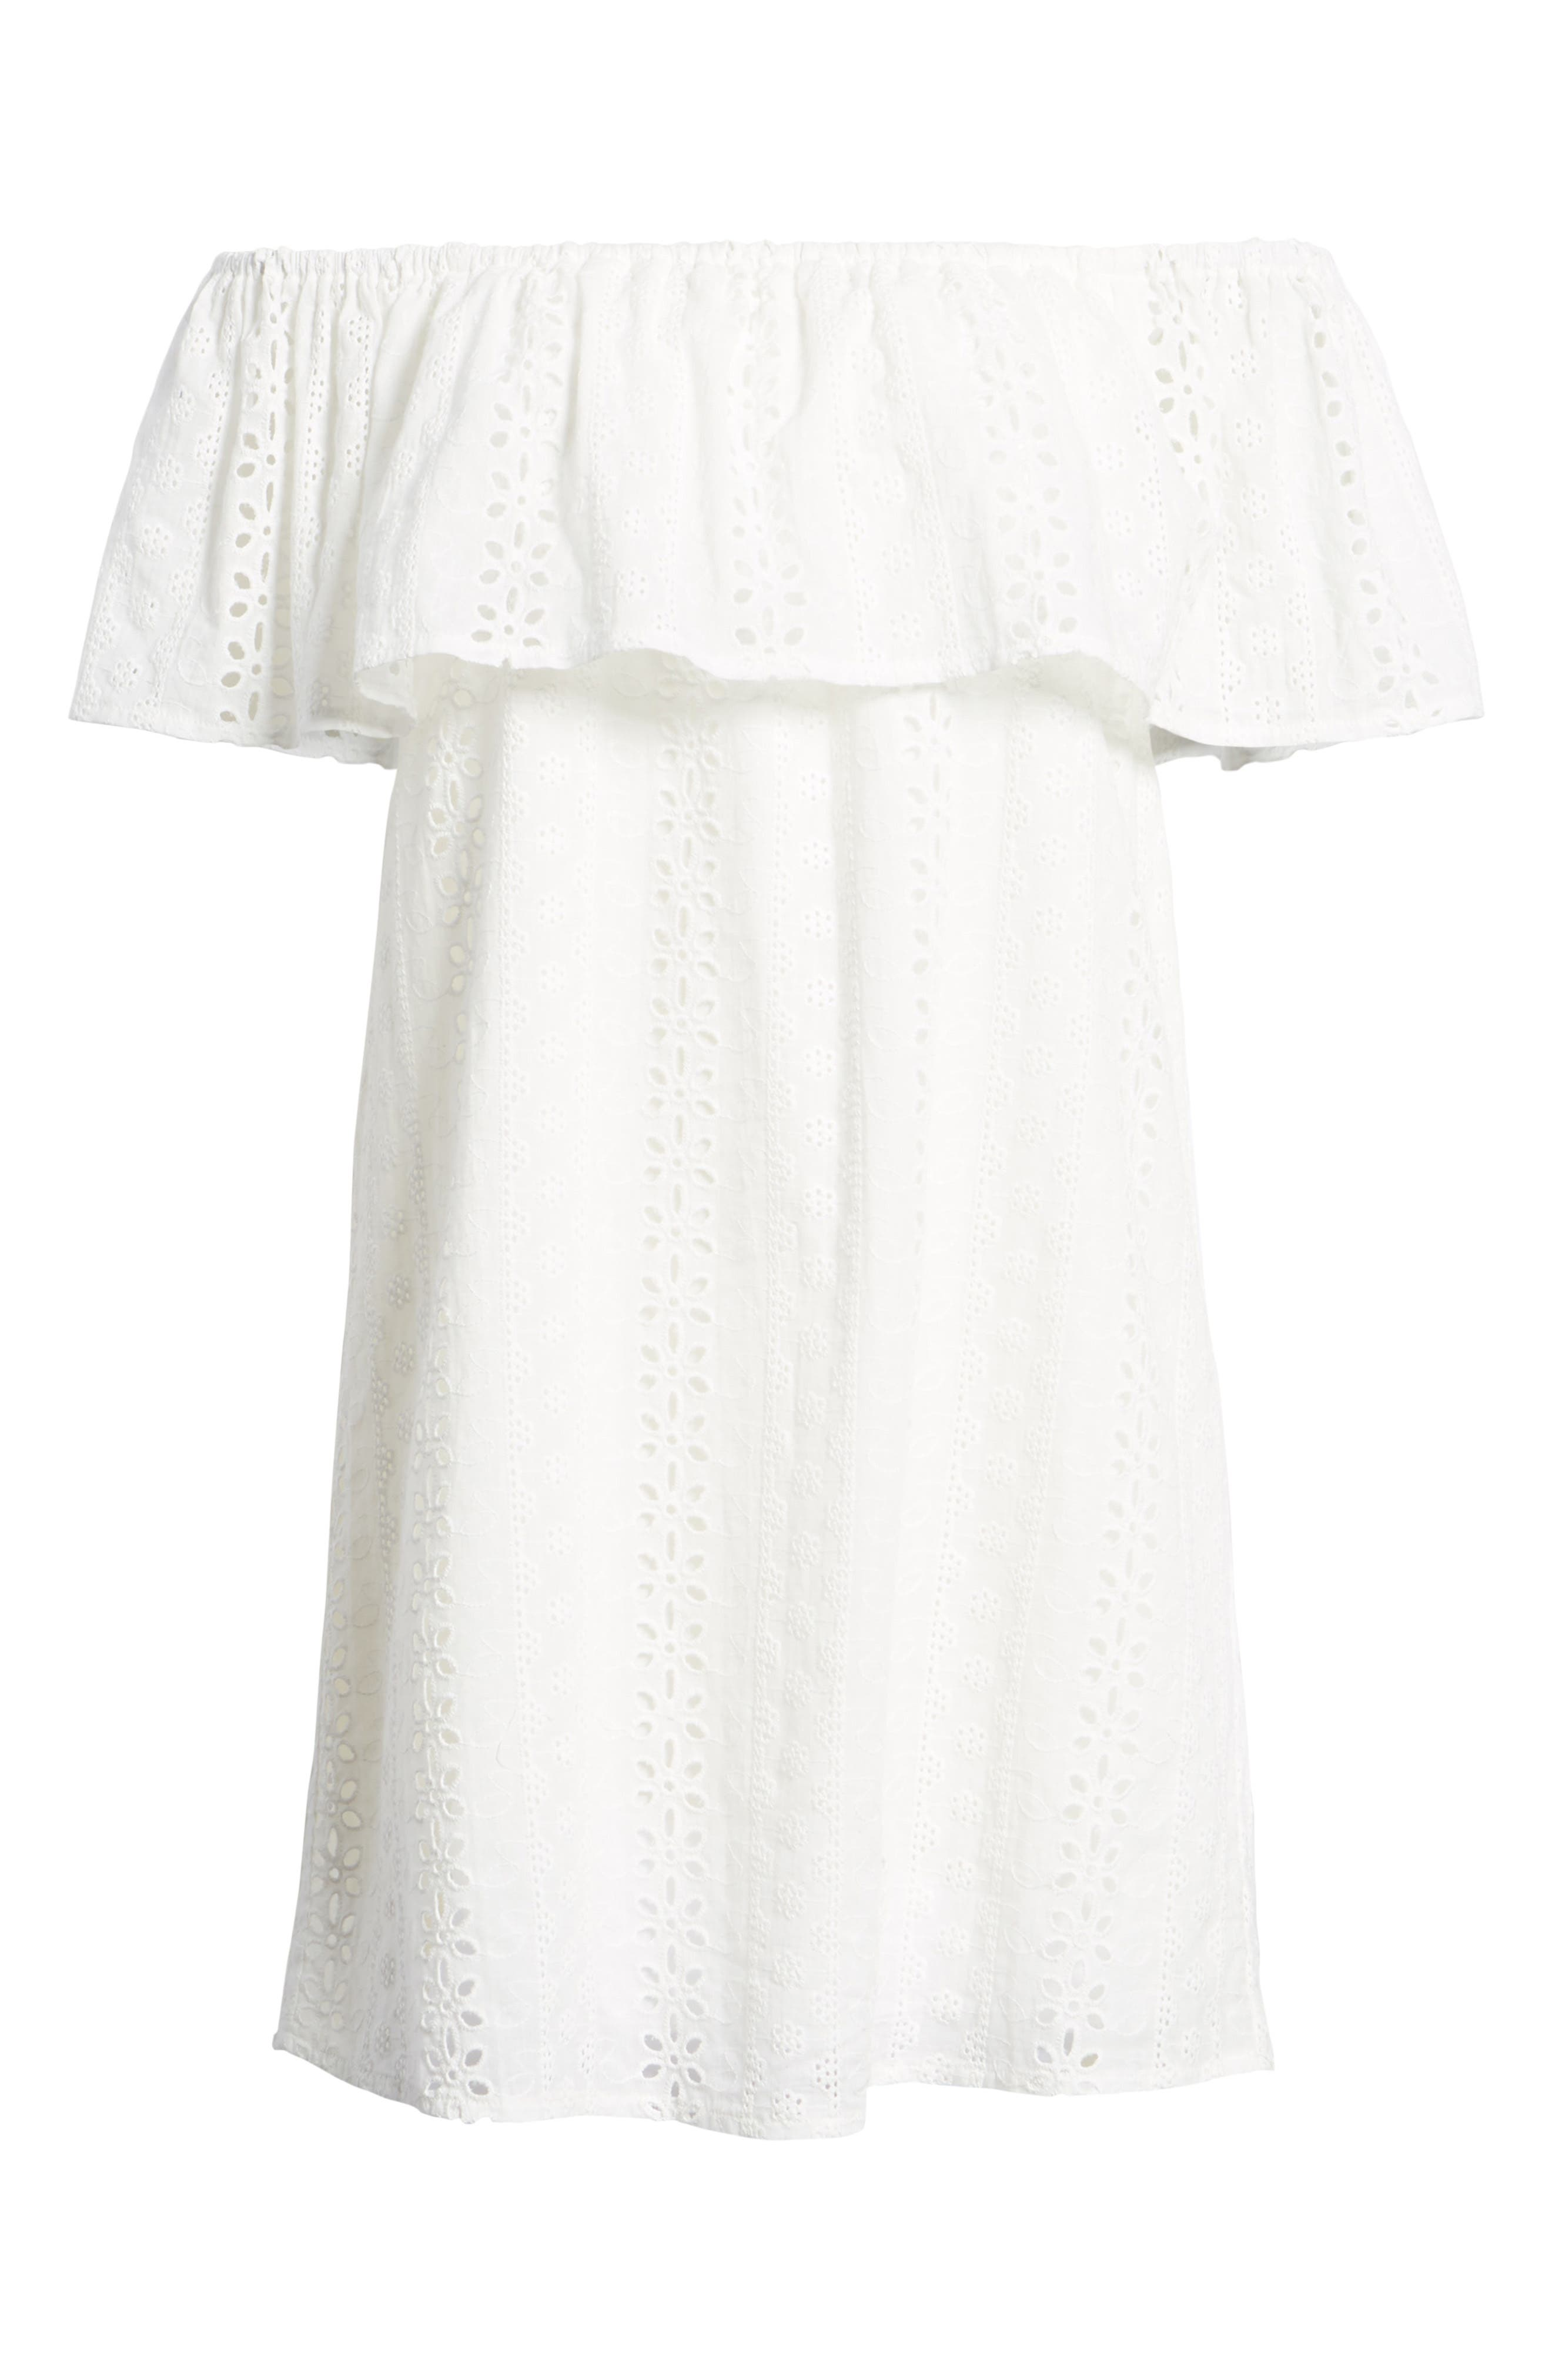 Bishop + Young Eyelet Ruffle Off the Shoulder Dress,                             Alternate thumbnail 7, color,                             100